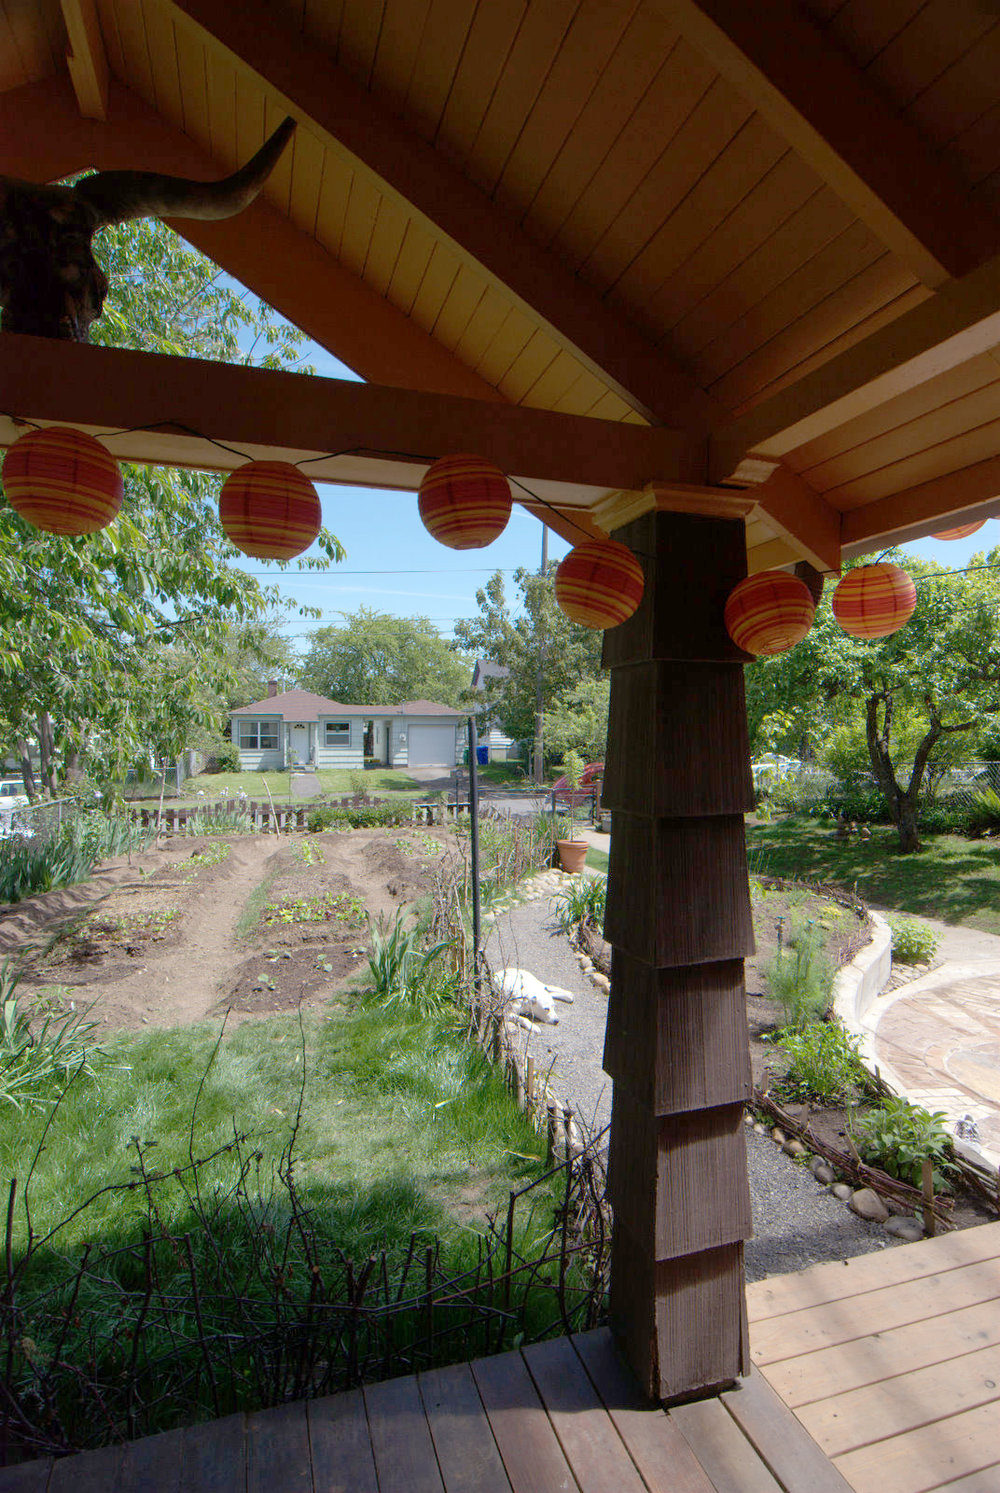 RC - garden from porch - Mike-edit.jpg